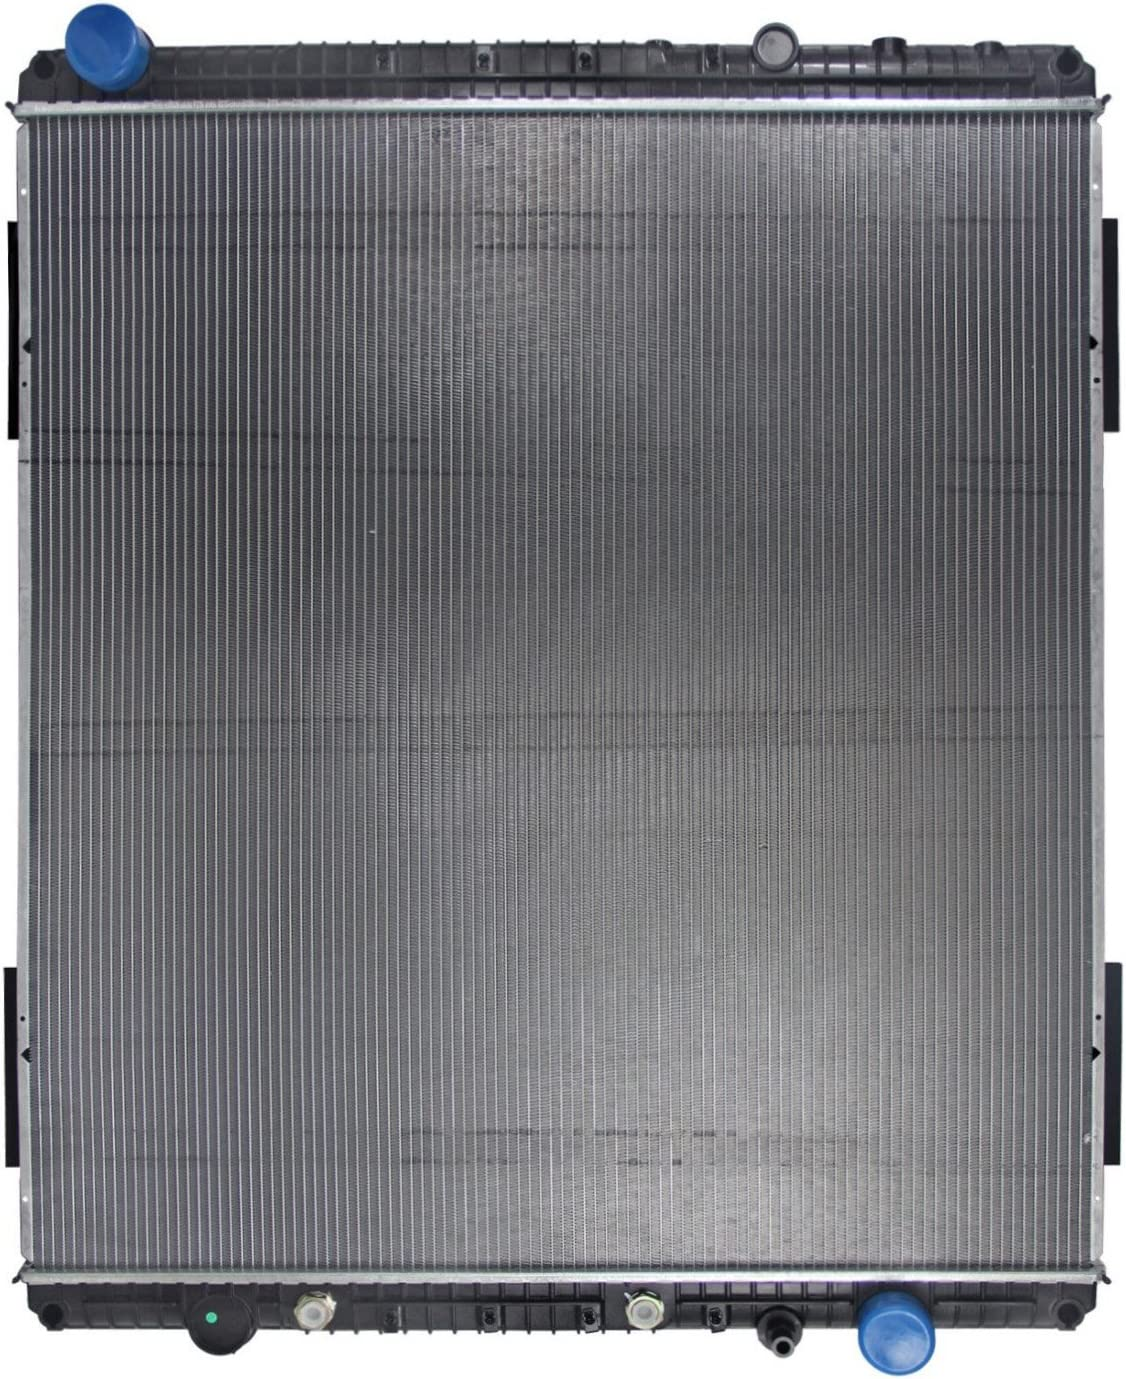 OSC Automotive Products HD1191 Radiator Heavy-Duty Dealing full price reduction Challenge the lowest price